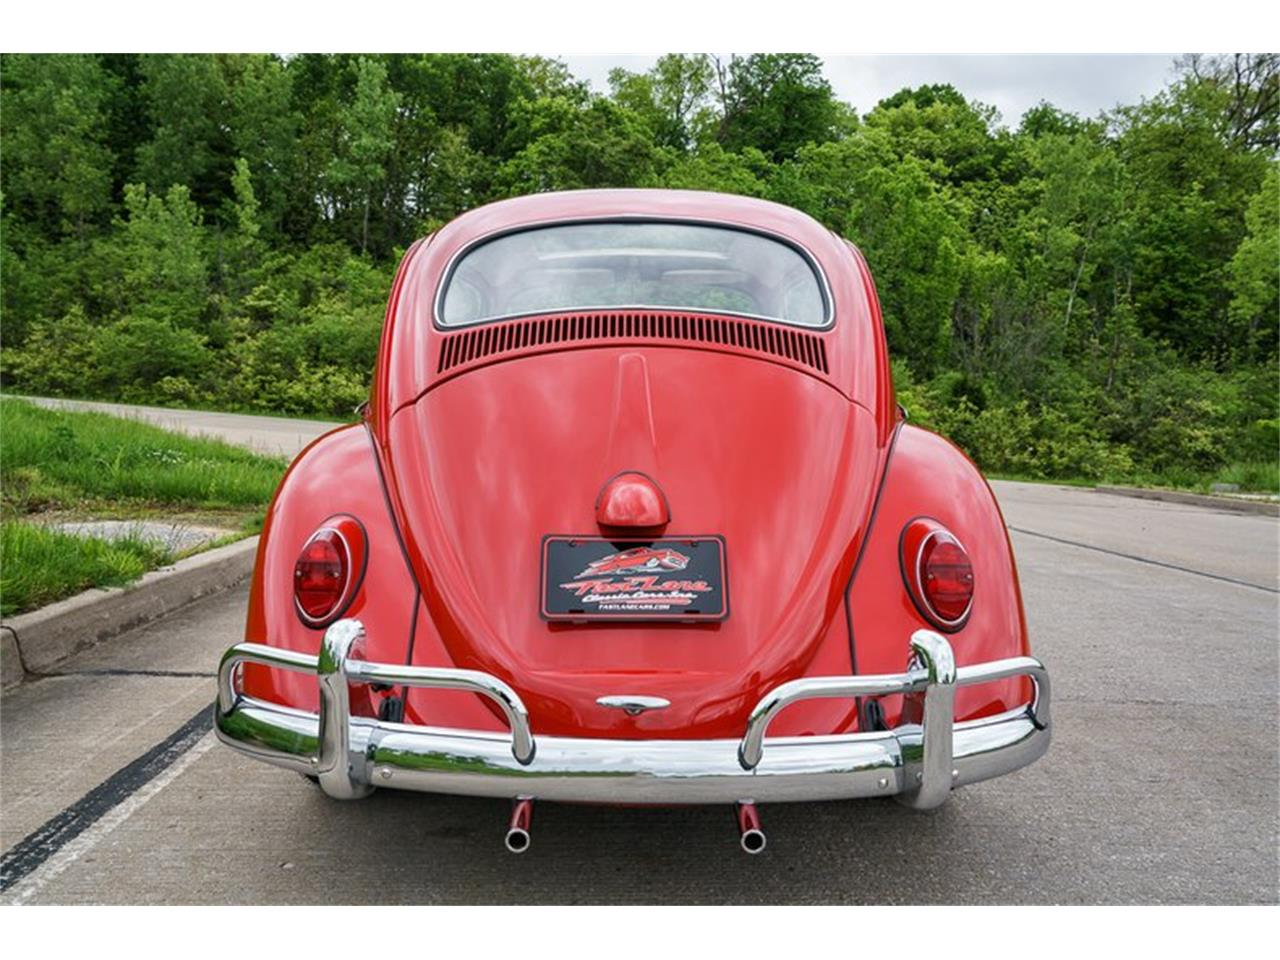 Large Picture of Classic '64 Volkswagen Beetle located in Missouri - $17,500.00 - MTLO